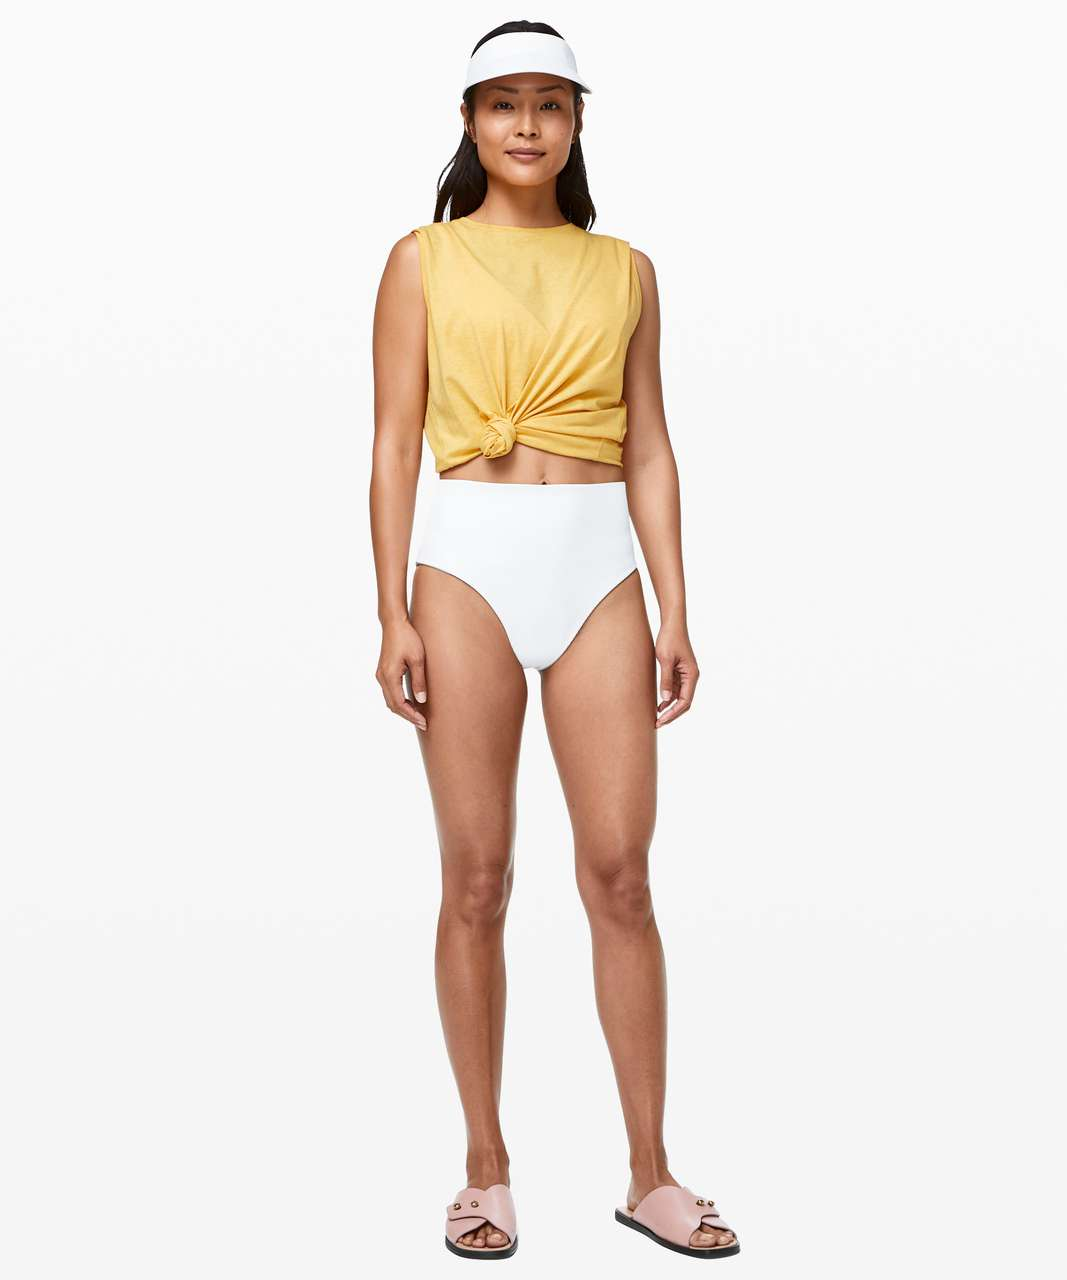 Lululemon Clear Waters High-Rise Skimpy Bottom - White